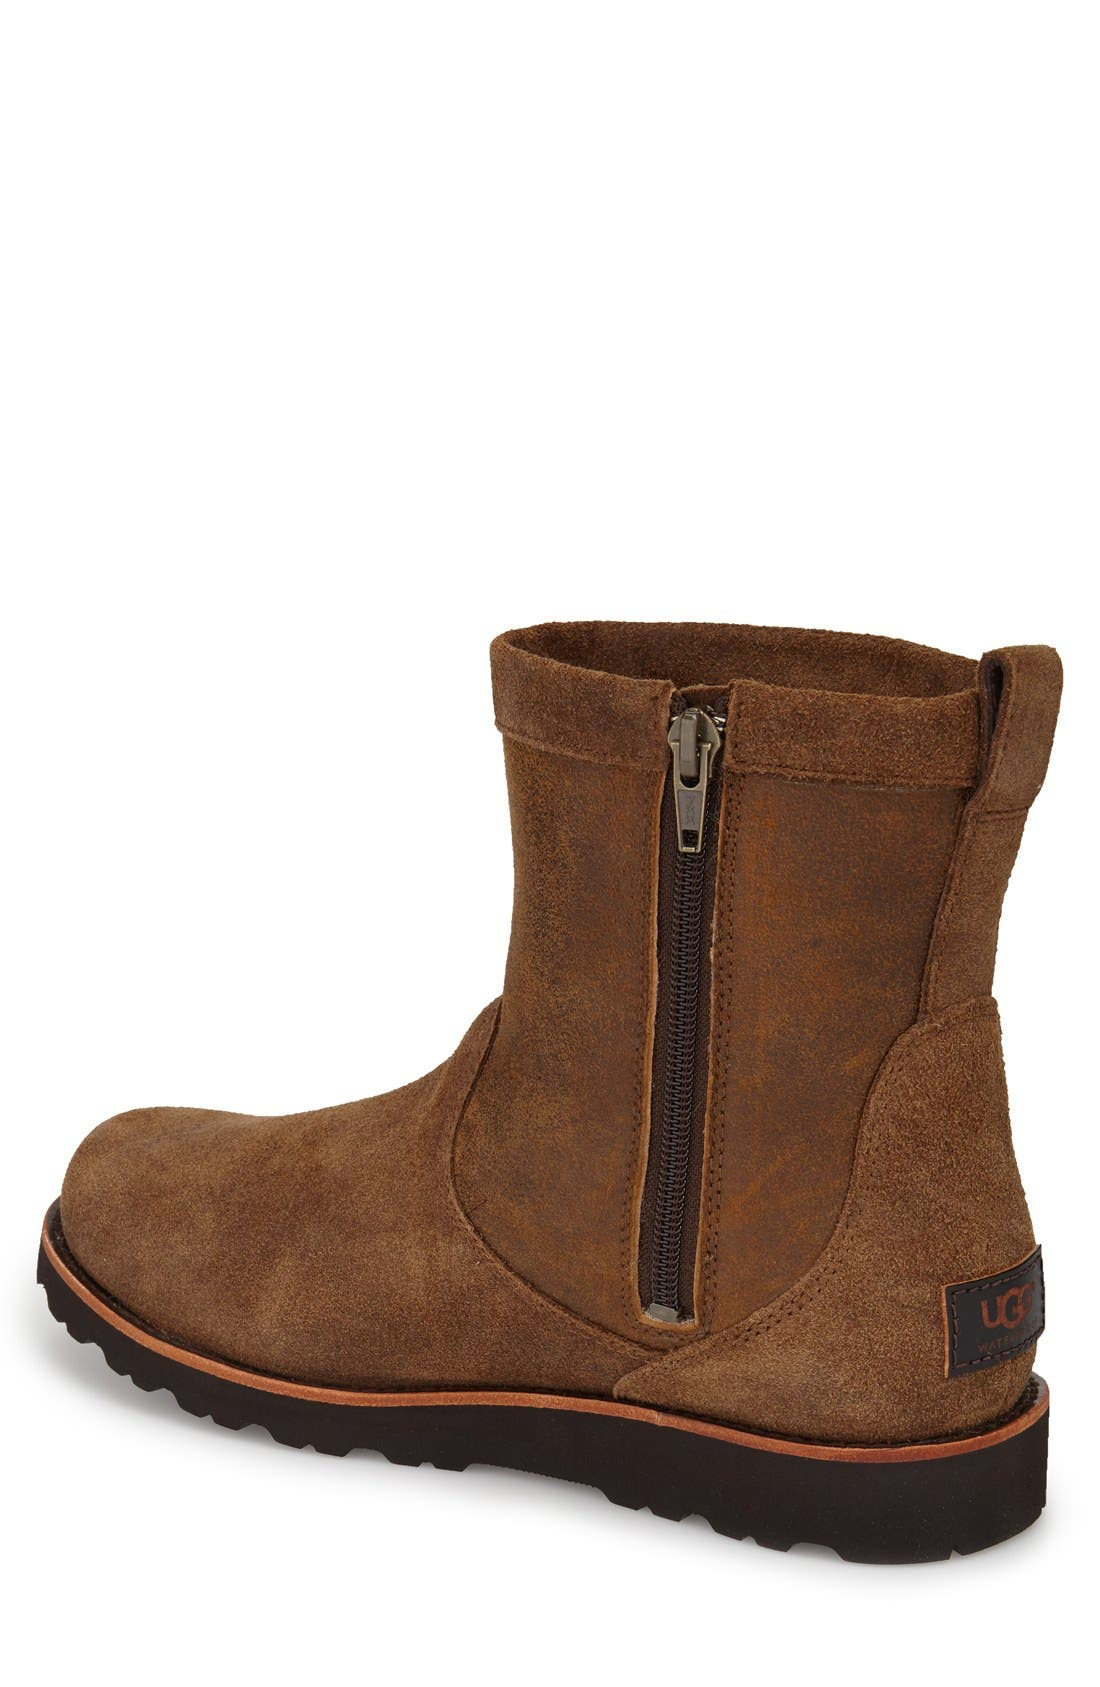 Alternate Image 2  - UGG Hendren Bomber Zip Boot (Men)